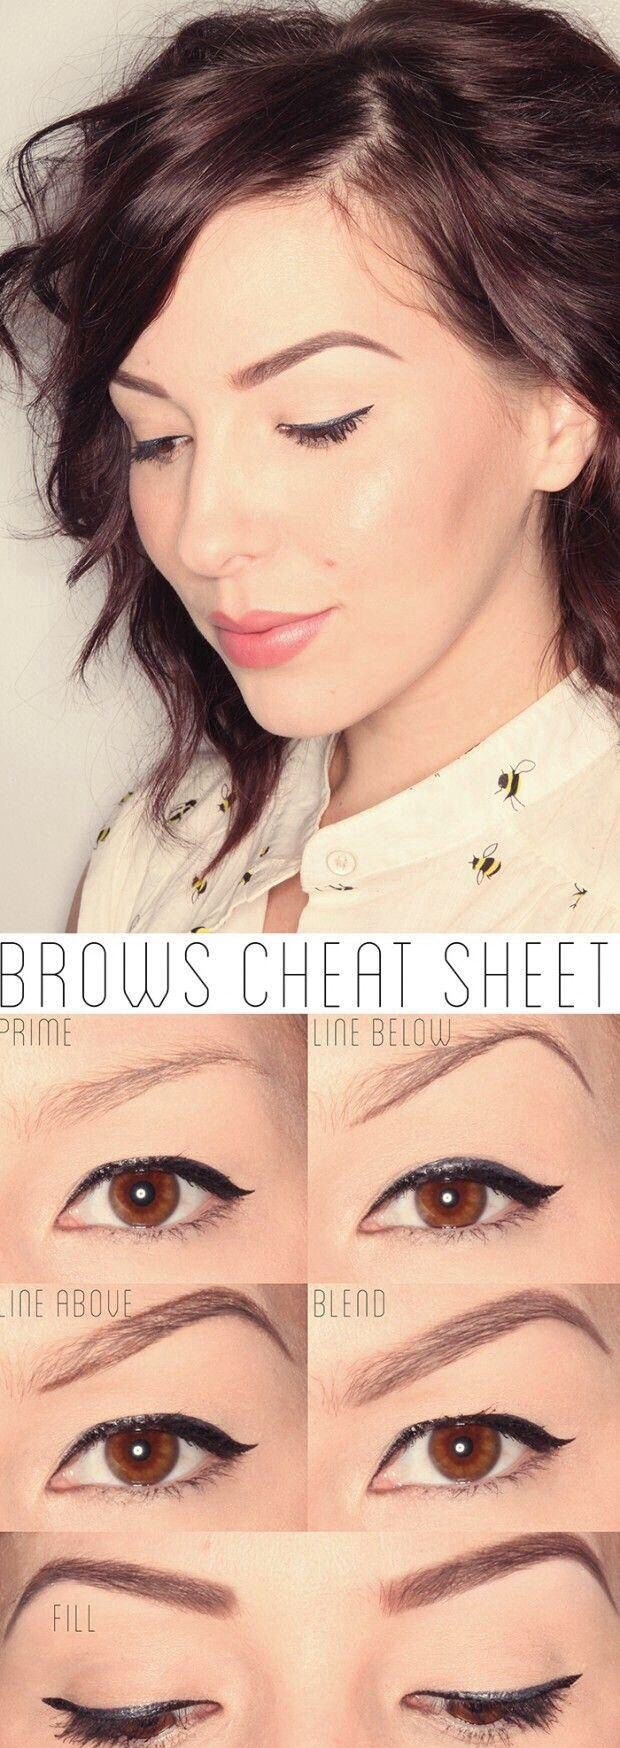 10 eye makeup tutorials from Pinterest to turn you into a beauty PRO